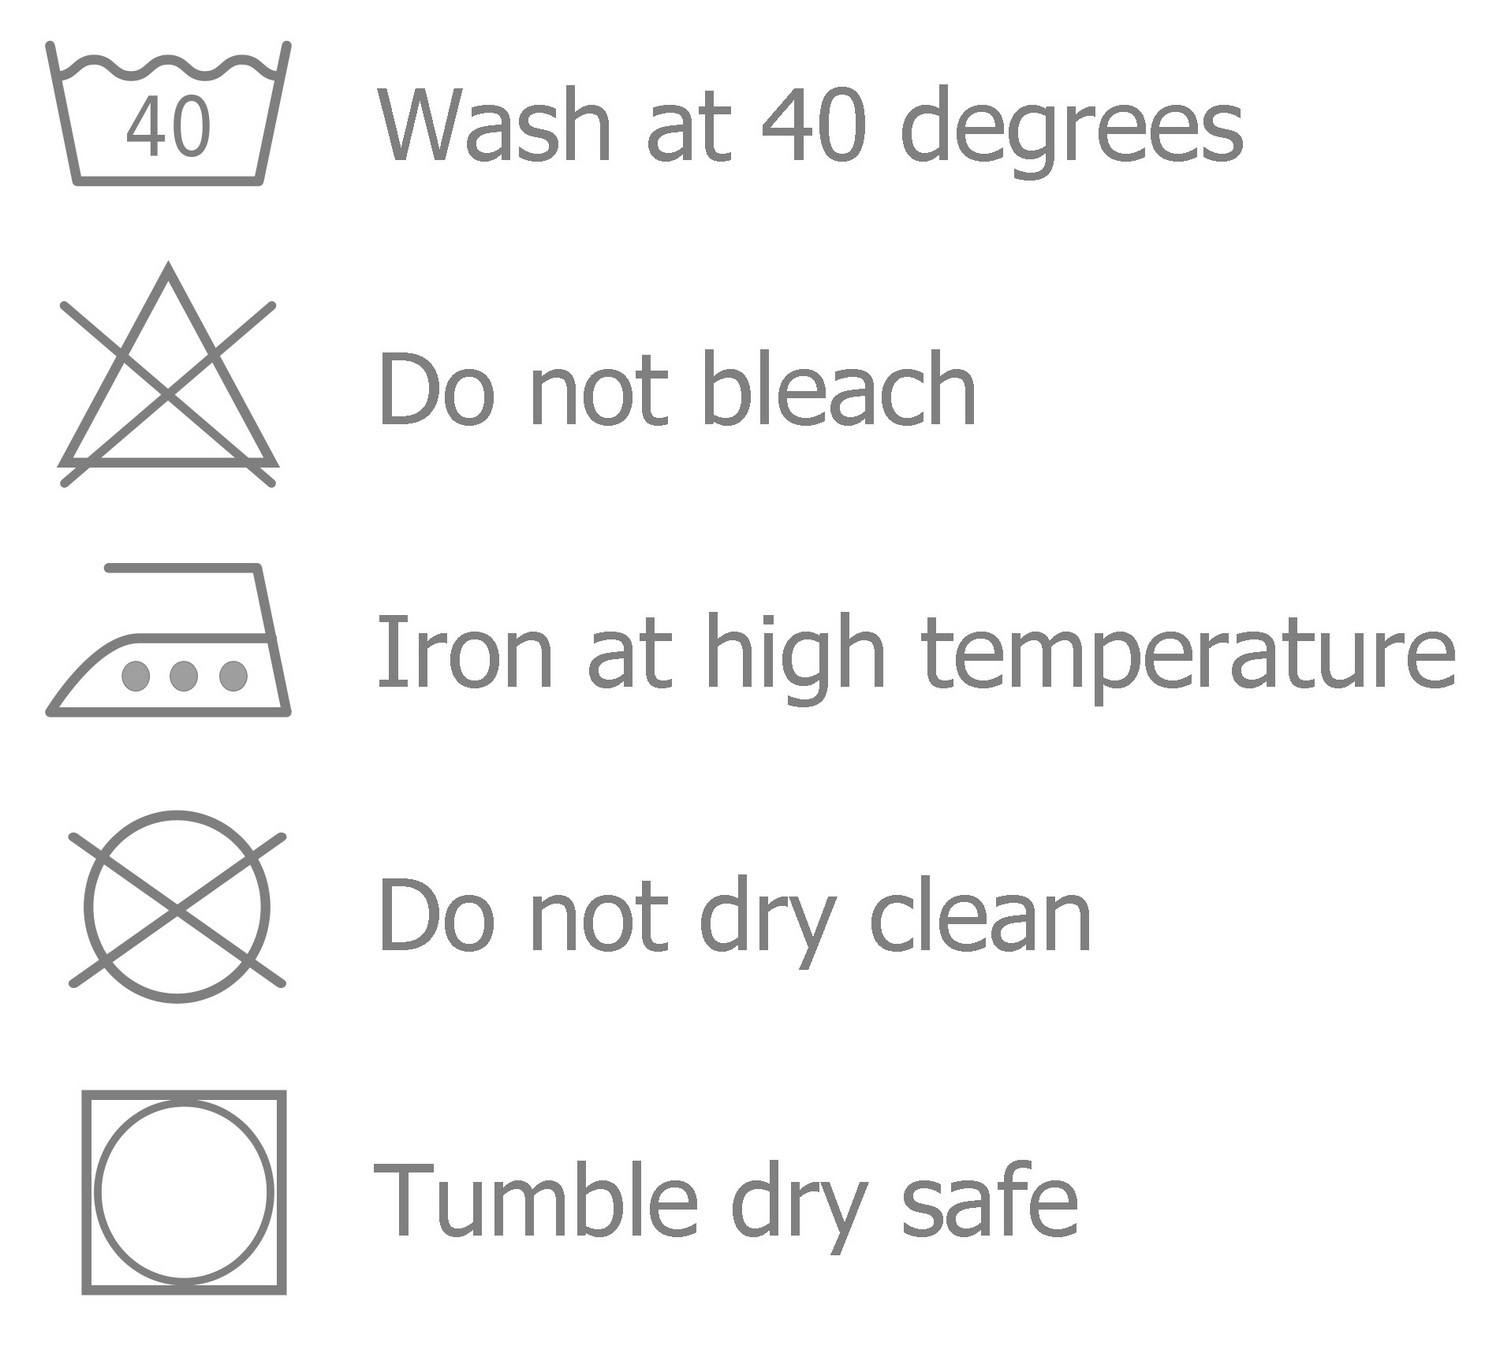 Roller Towel Care Guide